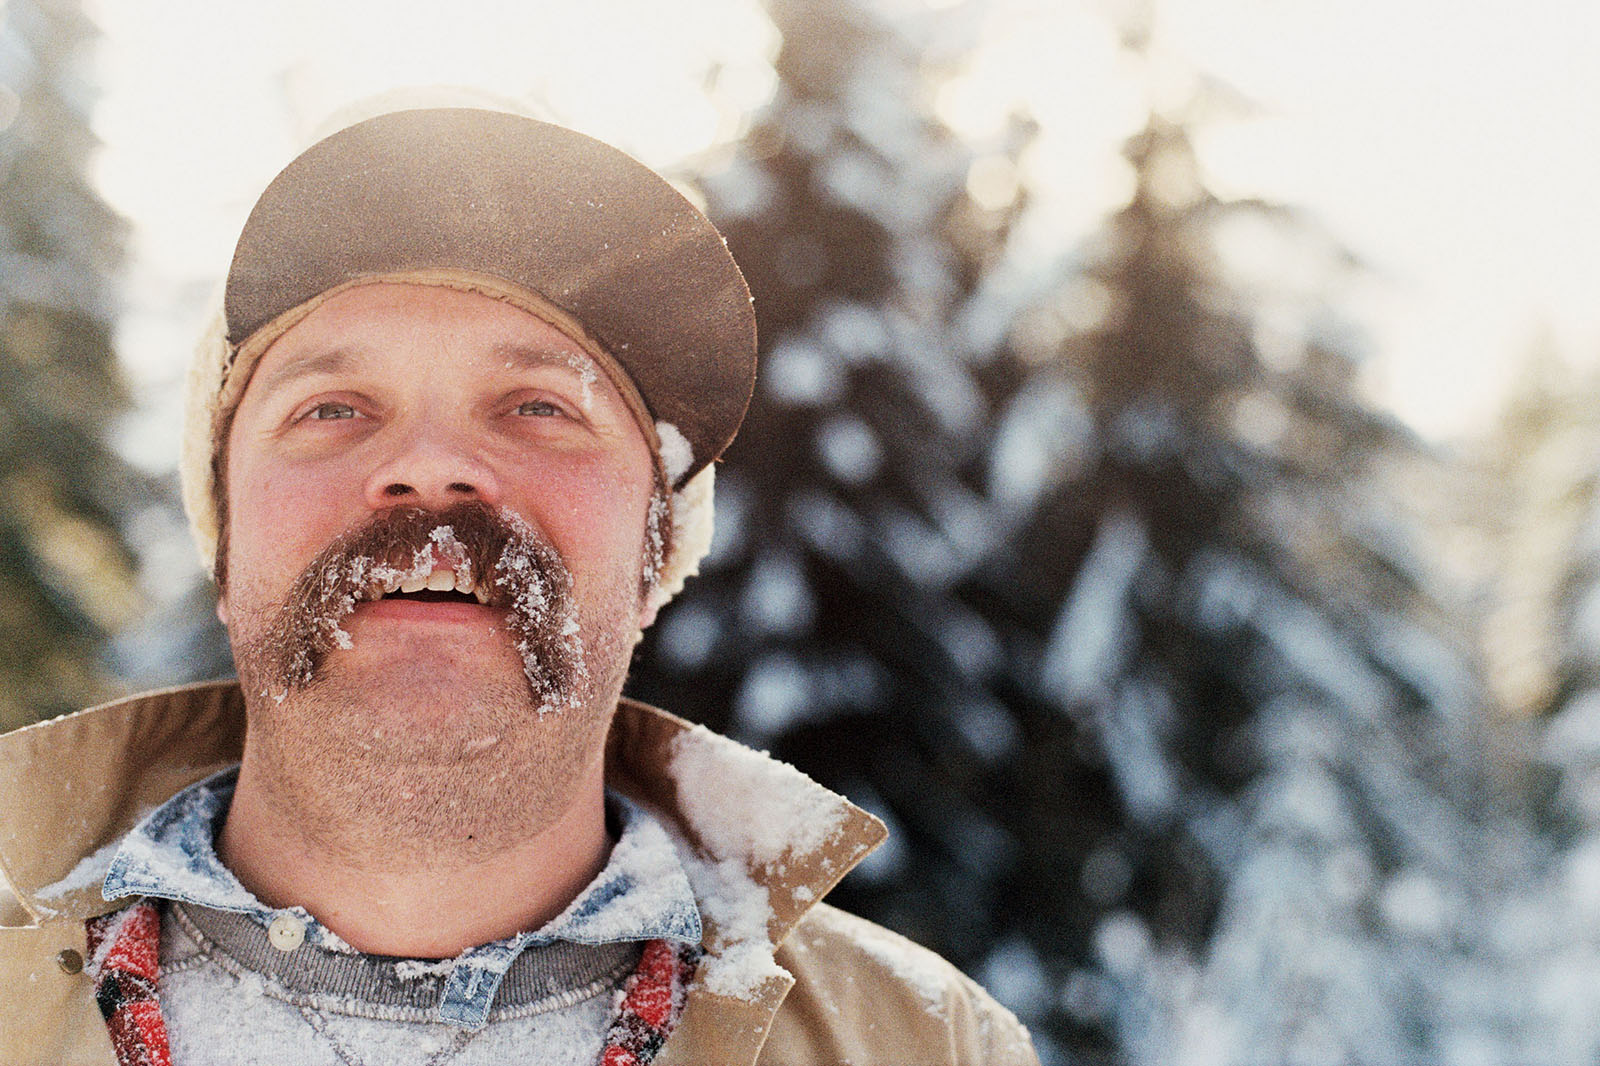 Miles after getting hit with snow in Trout Lake, WA | Contax Aria